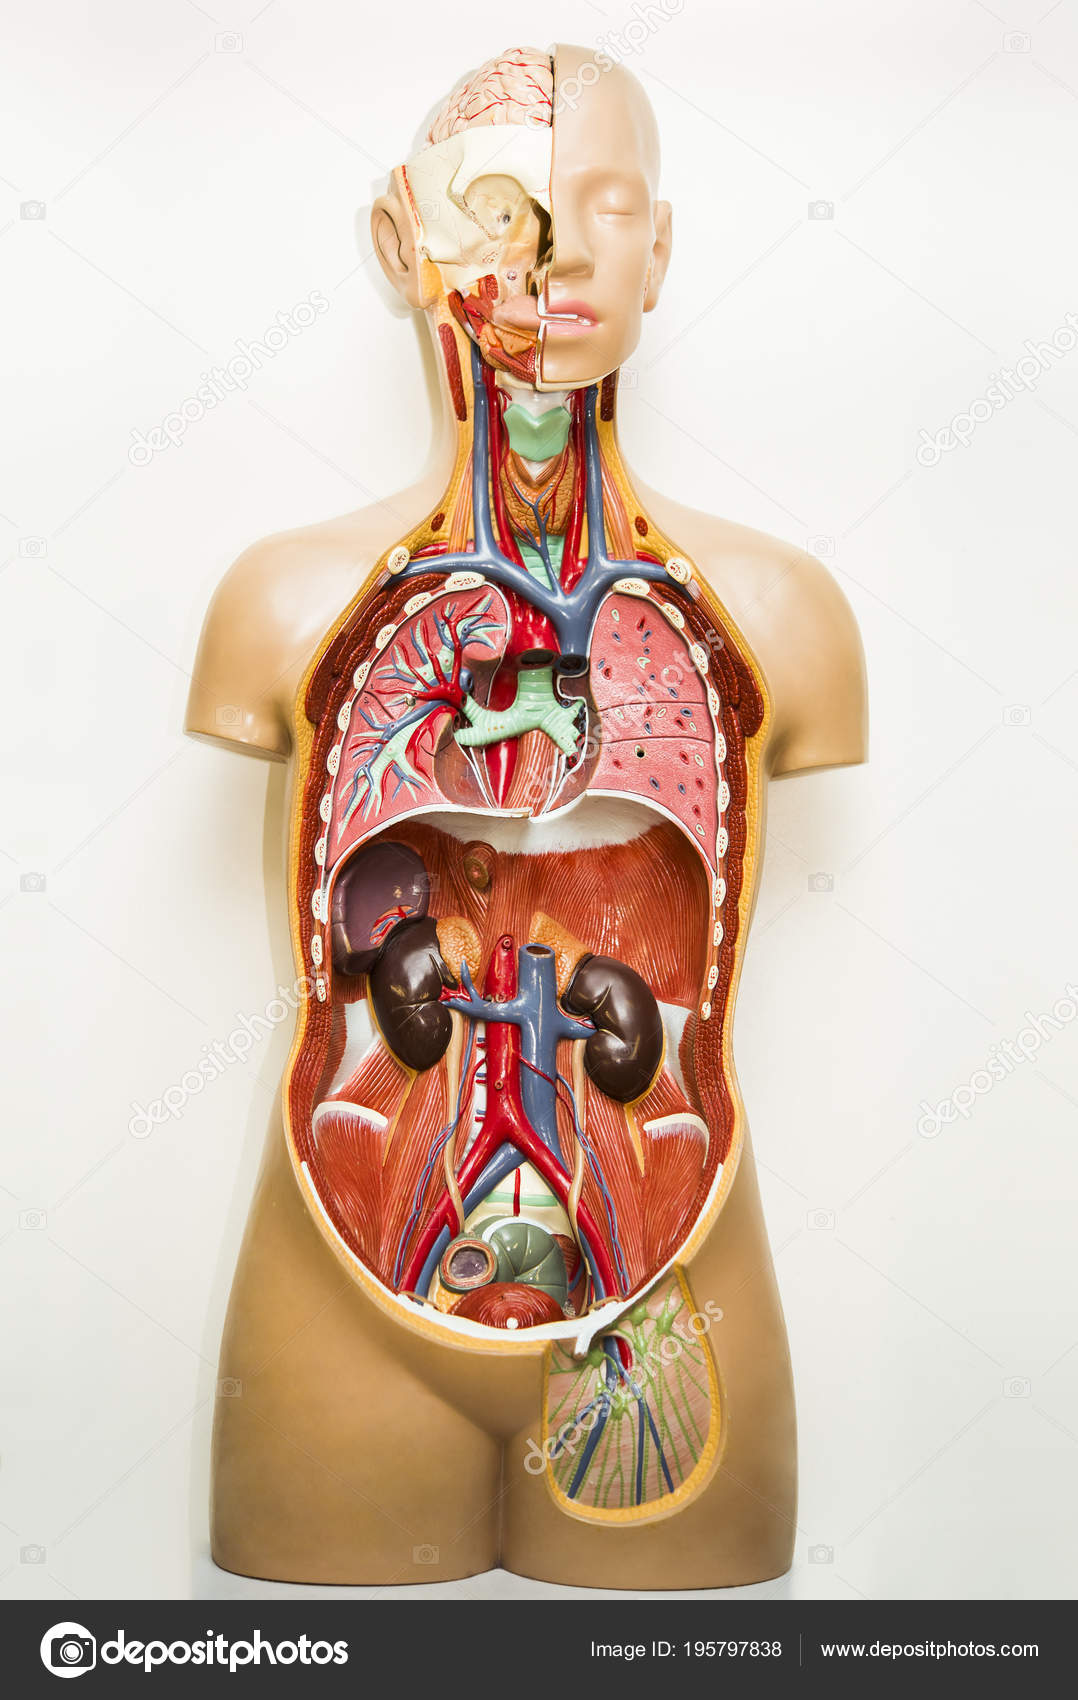 Plastic Model Human Body Anatomy Medical Internal Organs System